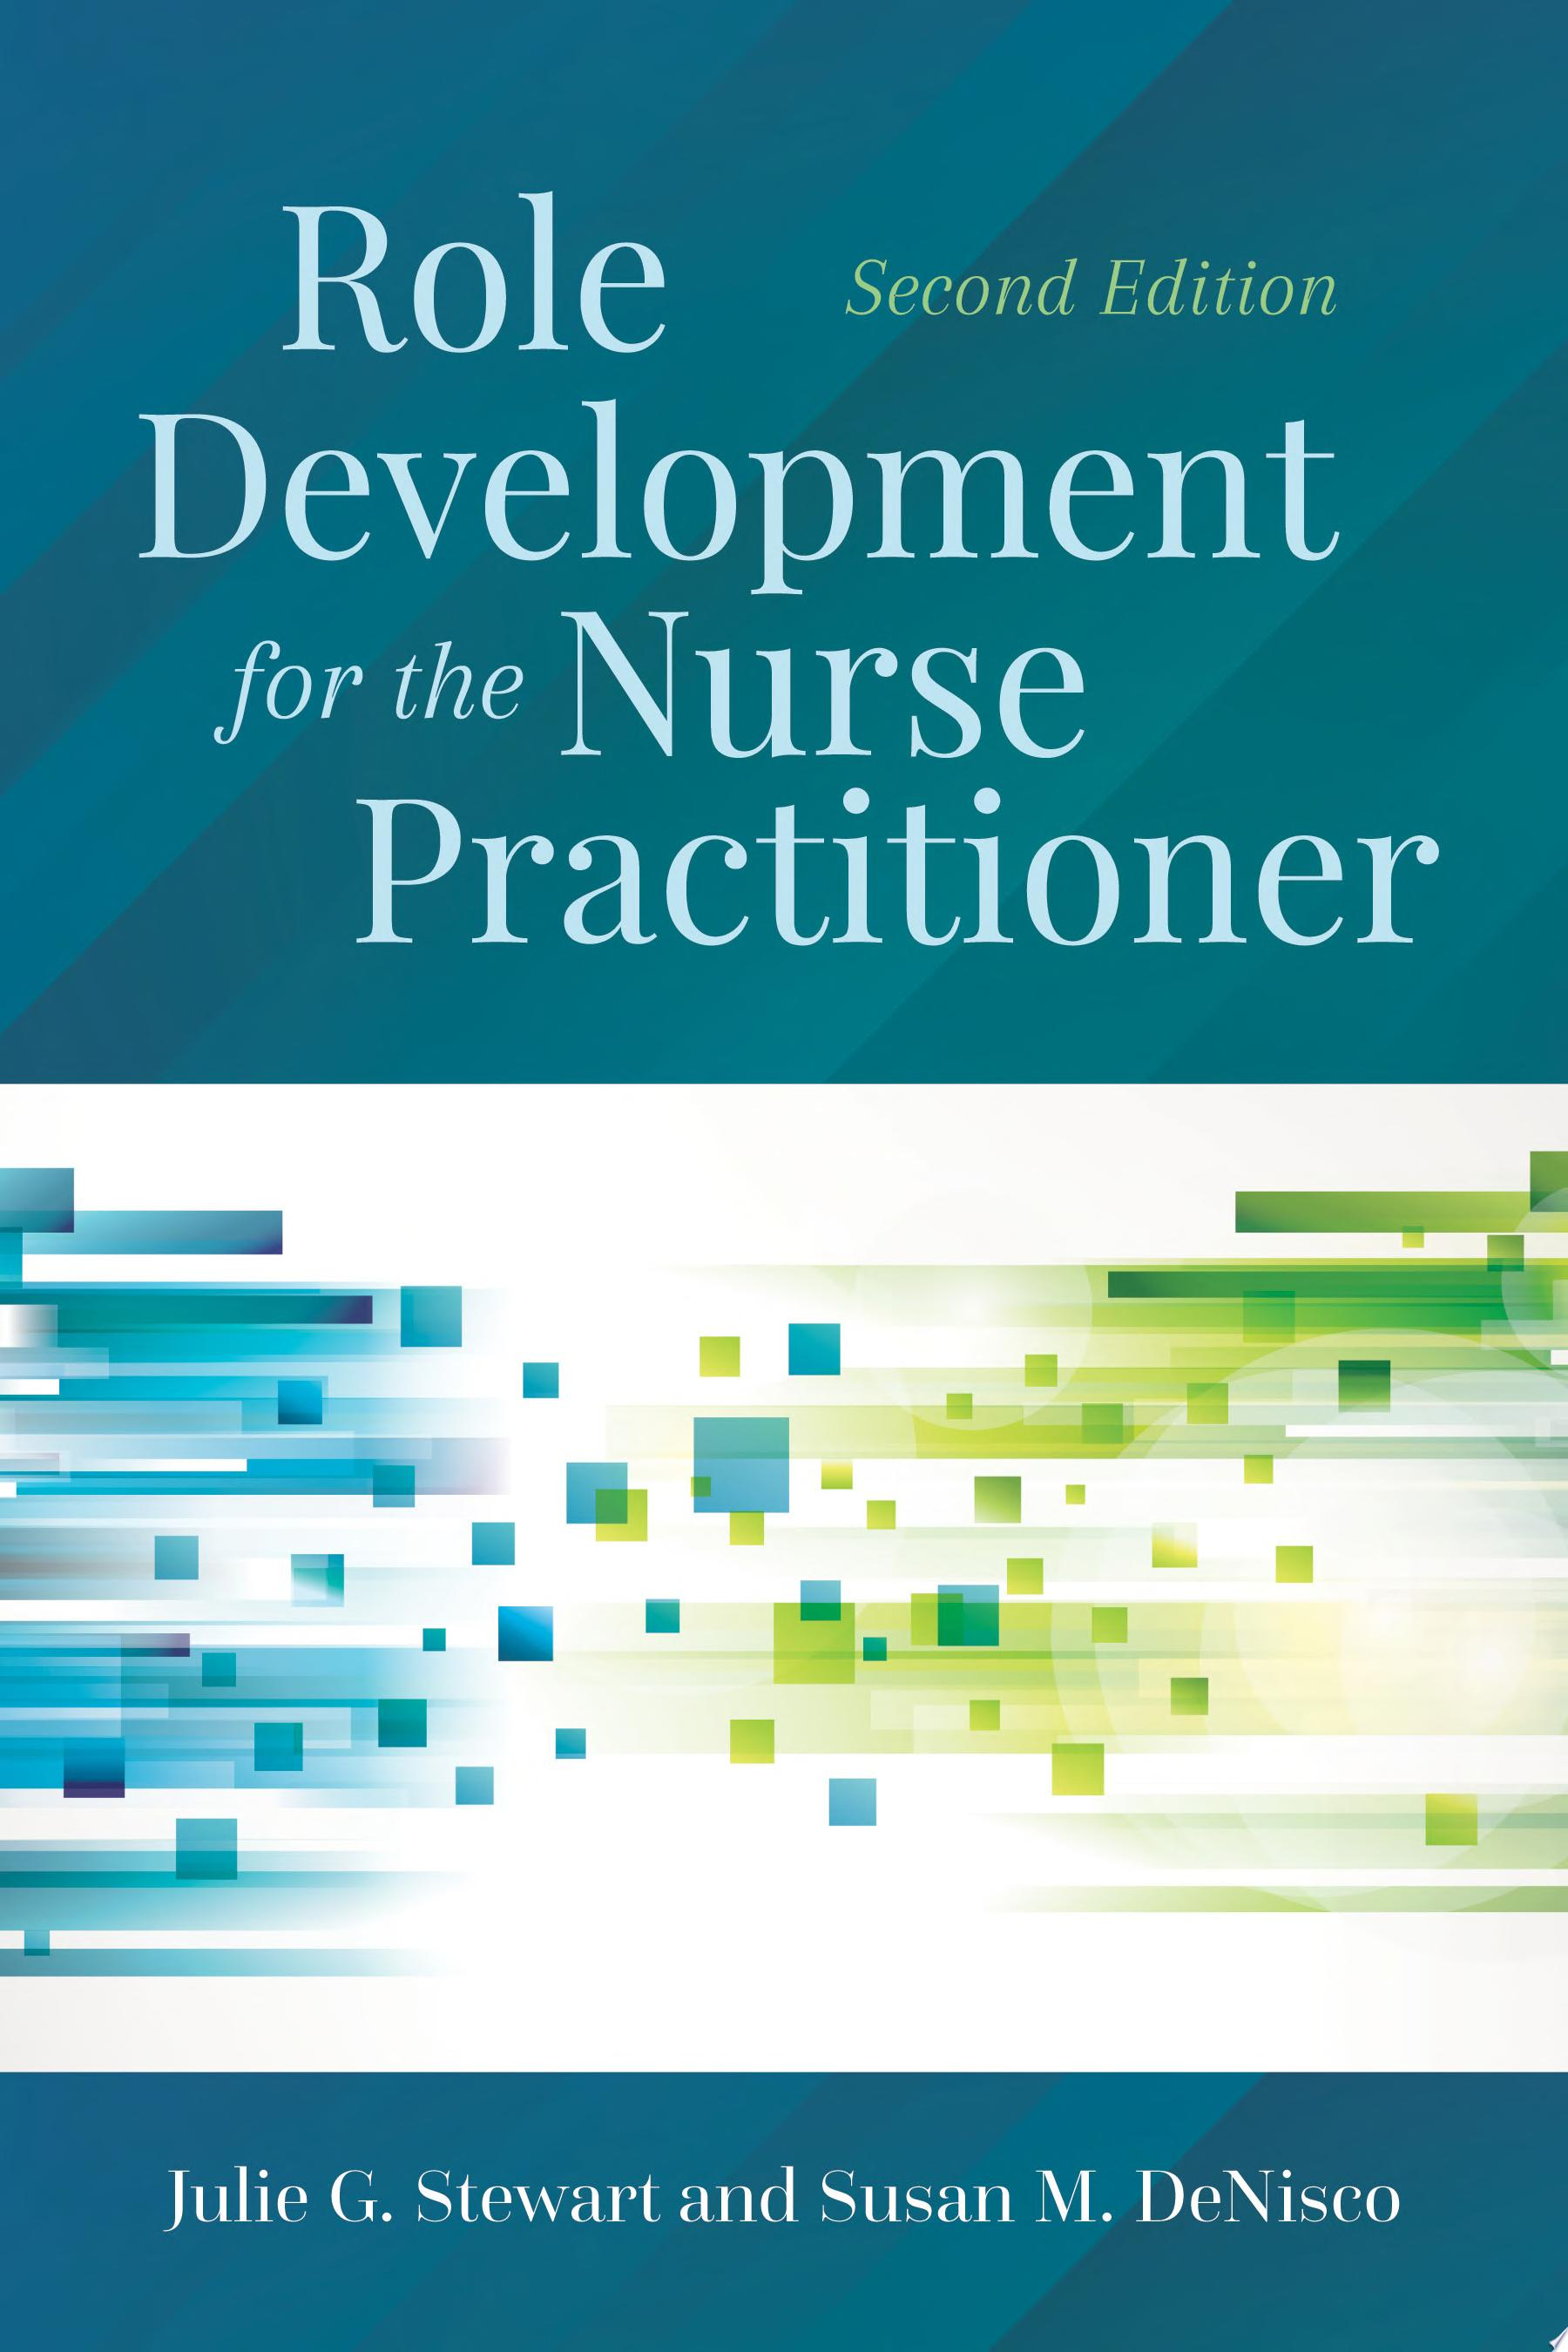 Role Development for the Nurse Practitioner